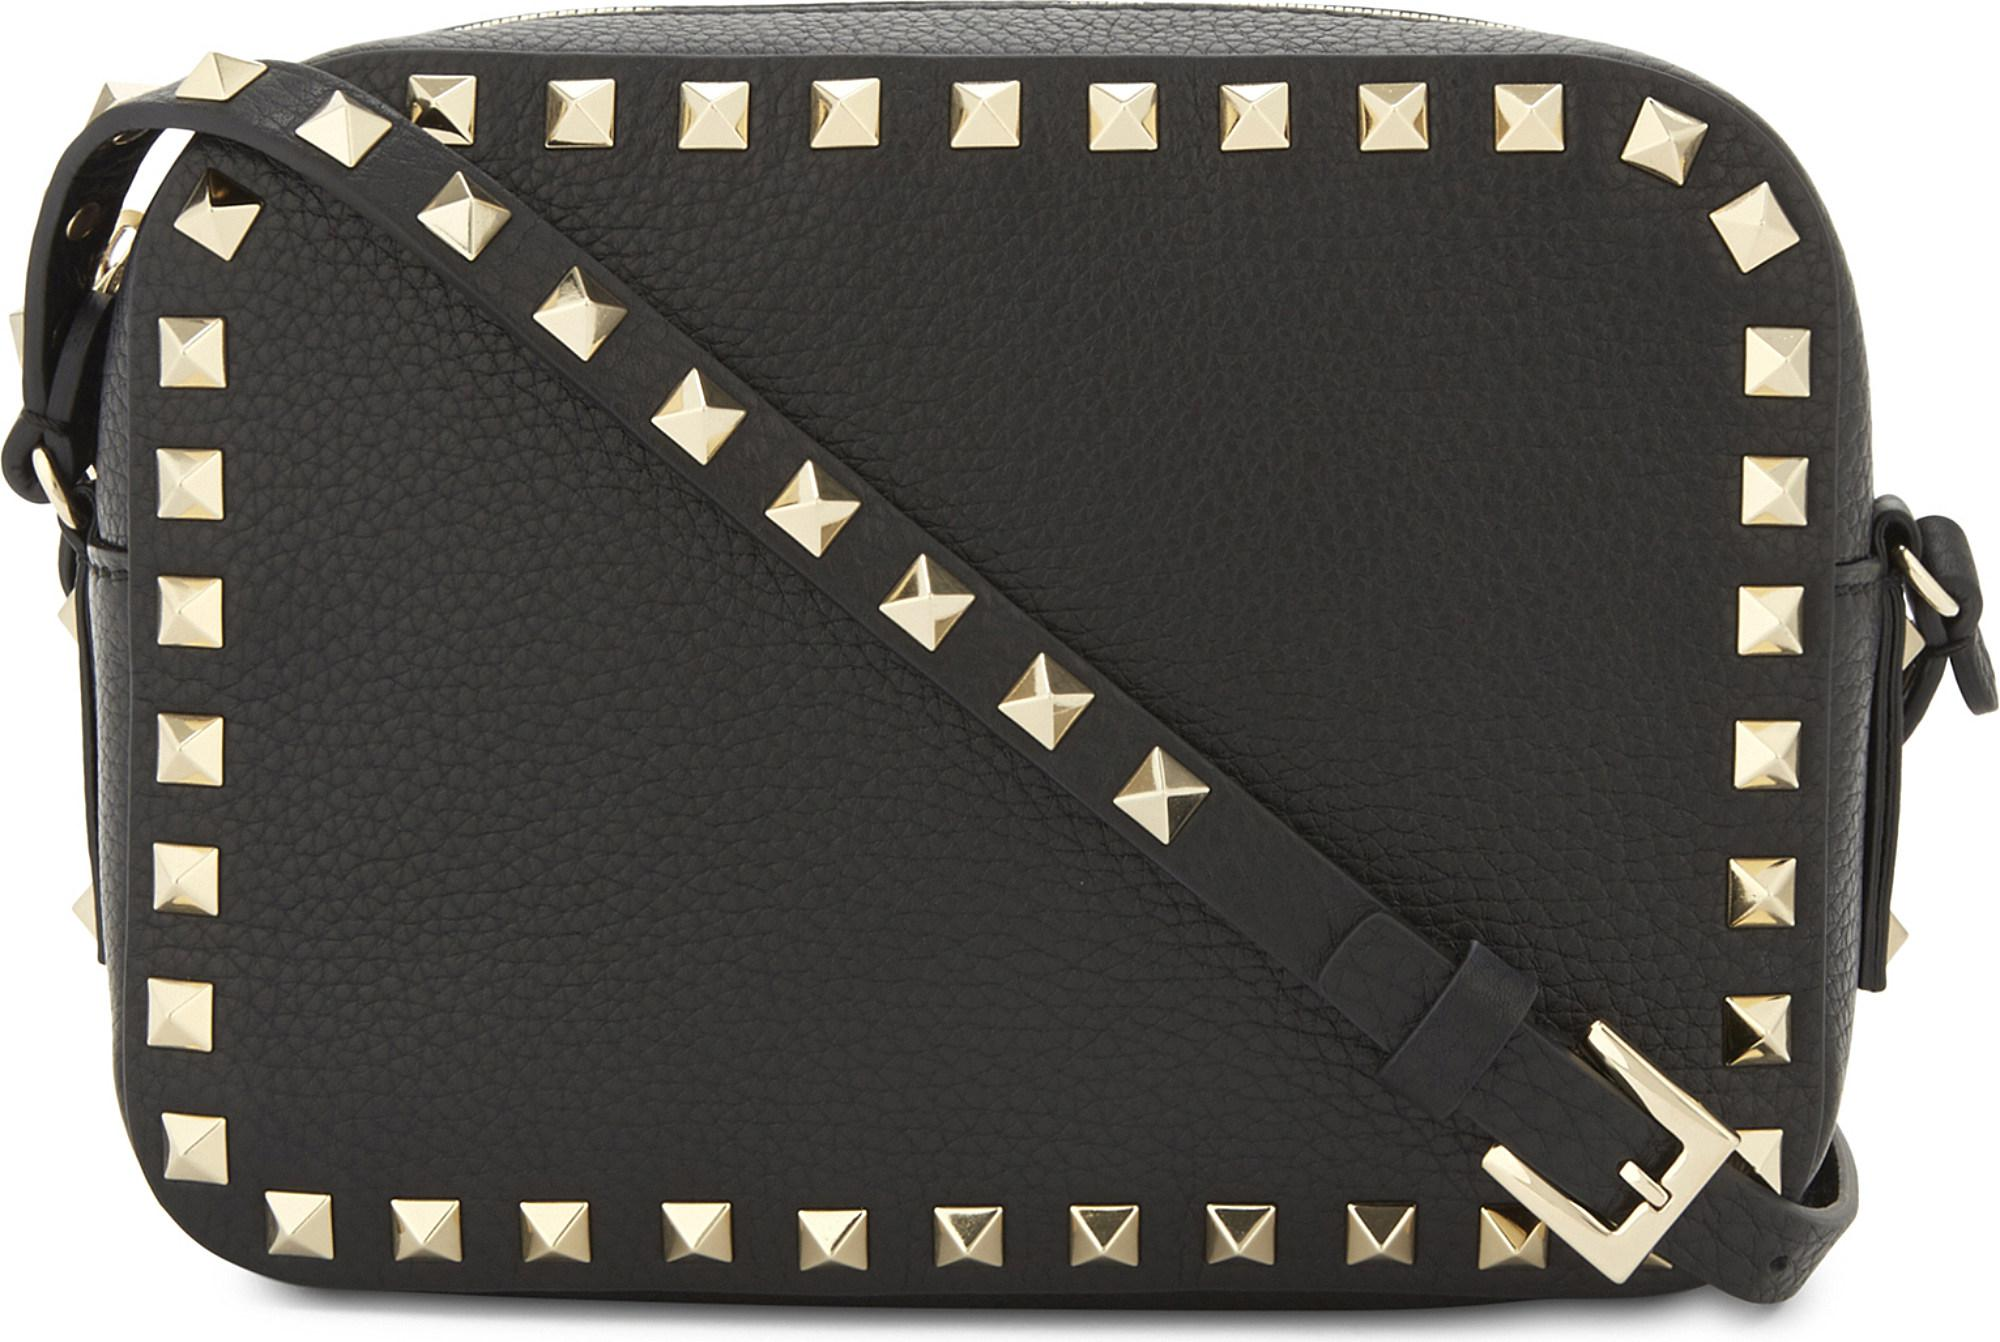 8ab6ee47a1 Lyst - Valentino Rockstud Leather Camera Cross-body Bag in Black